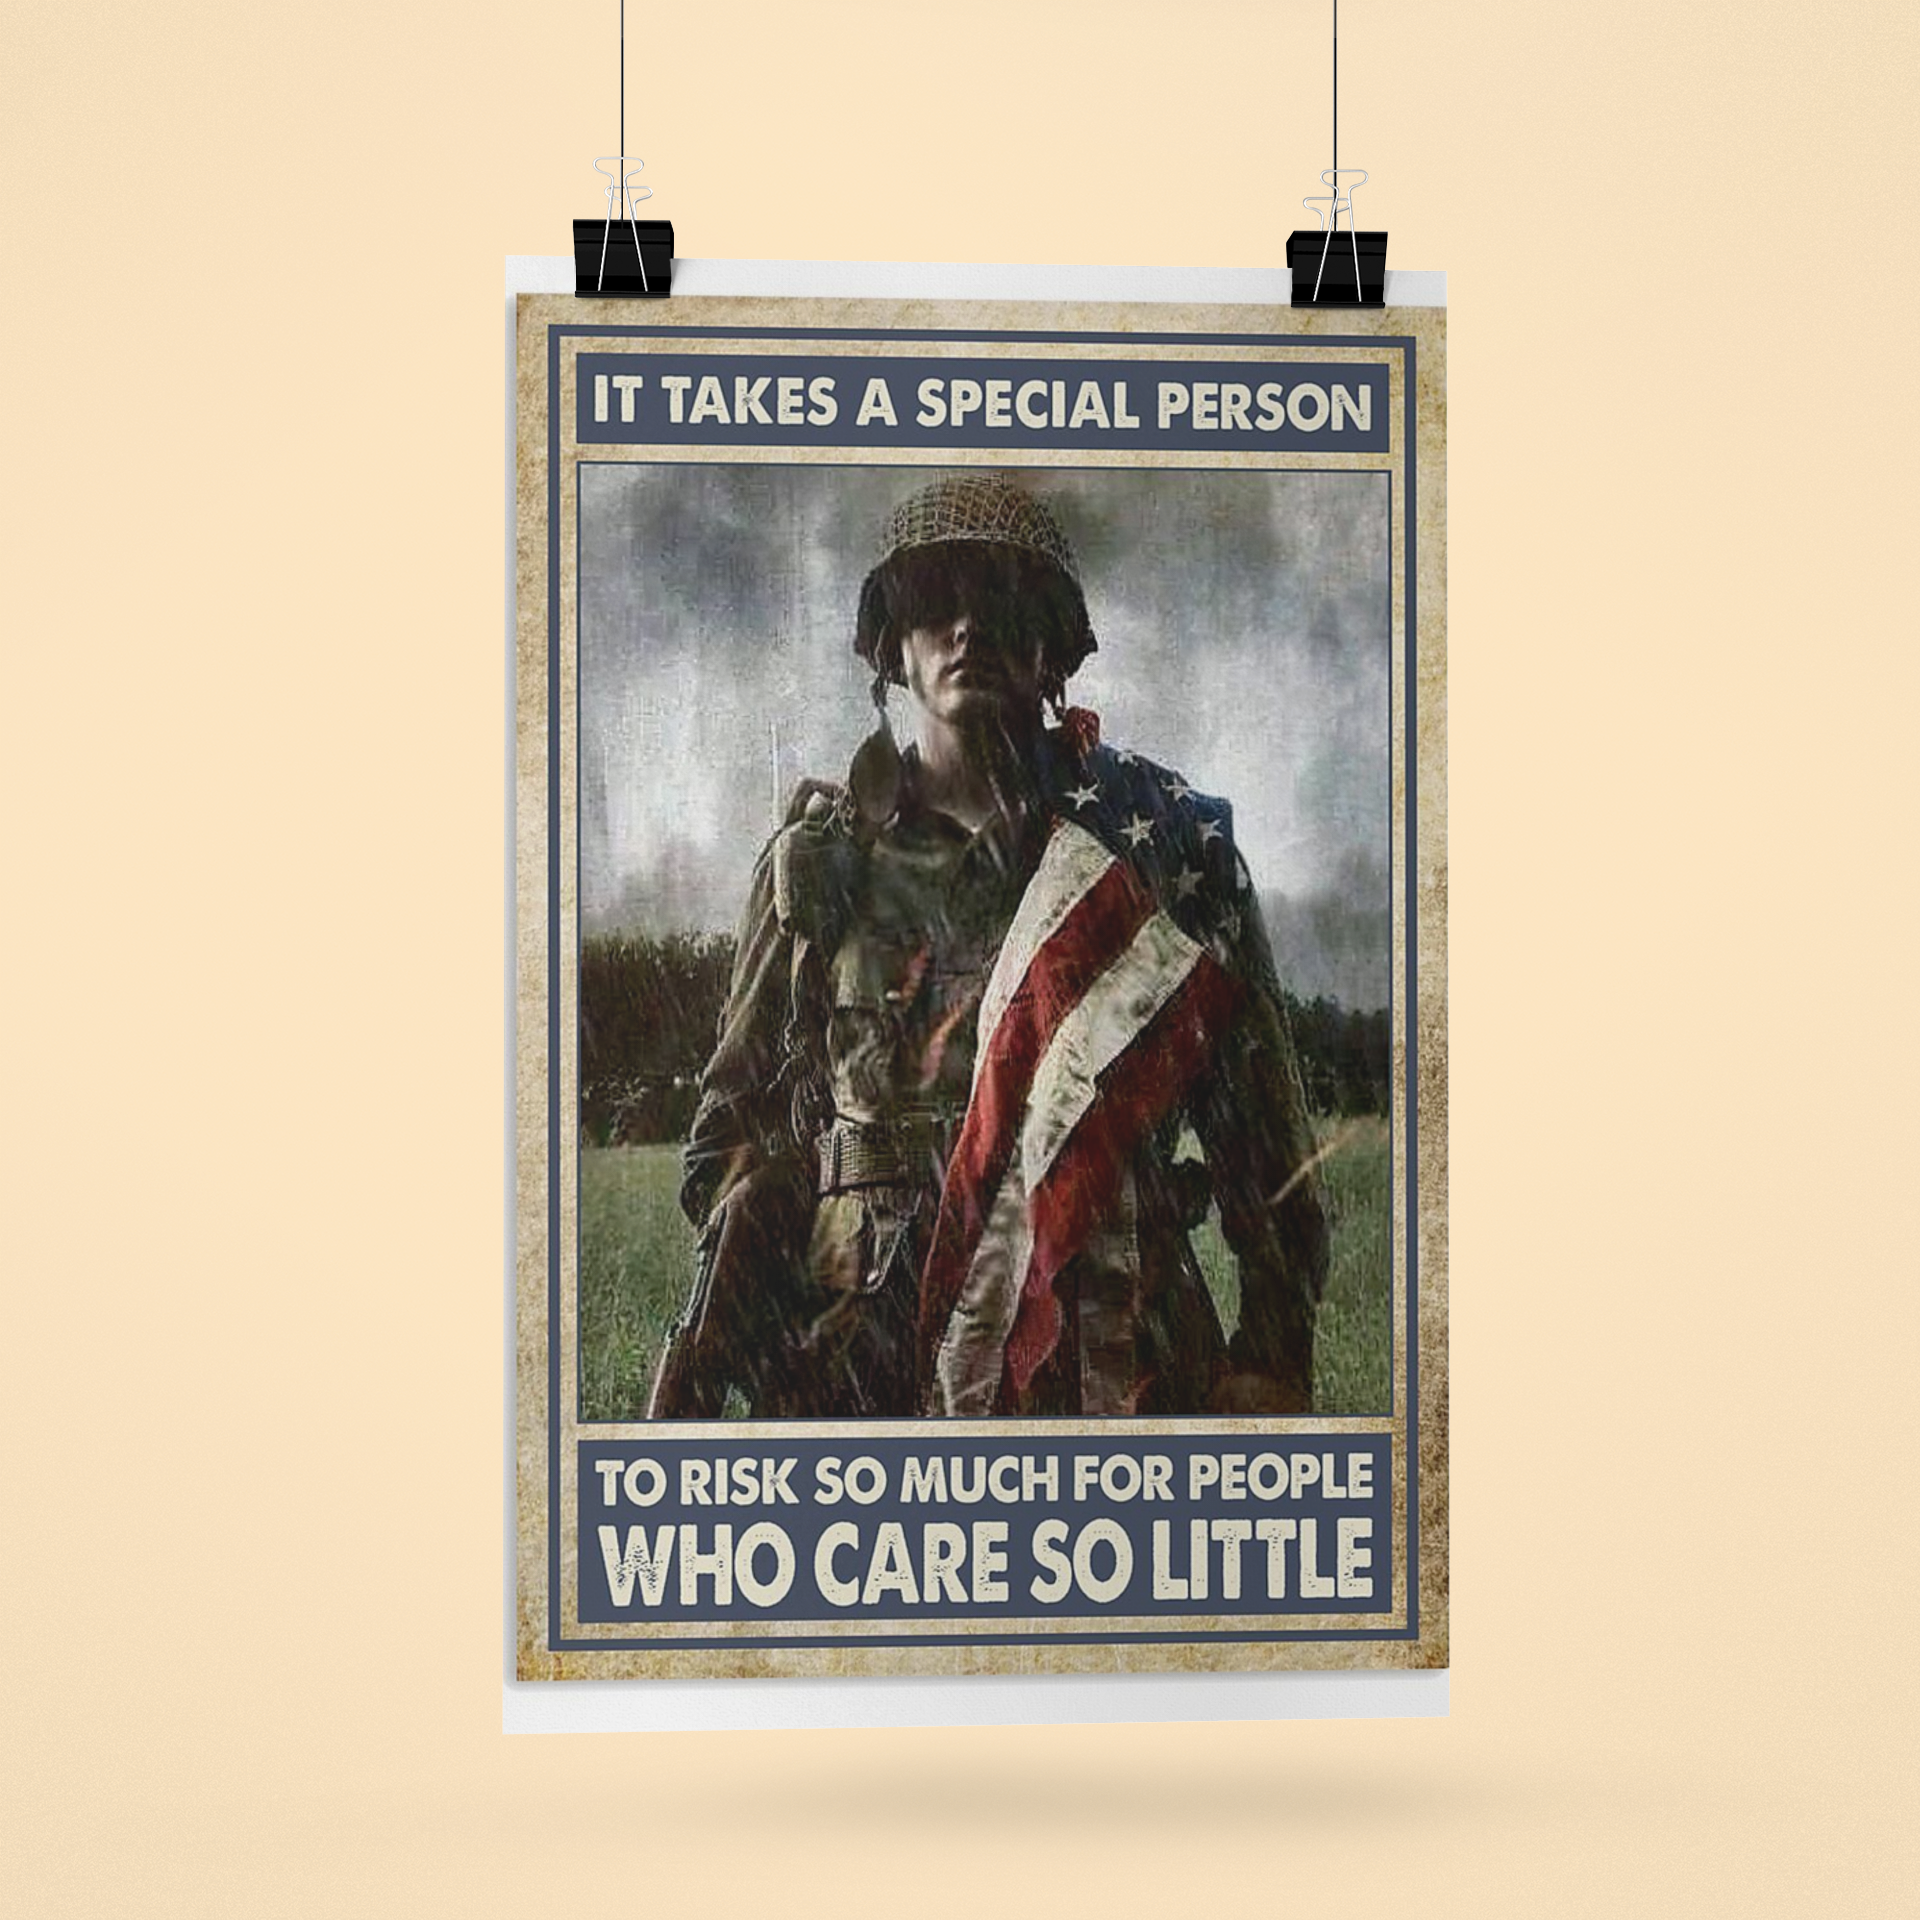 Veteran It takes a special person to risk so much for people who care so little poster